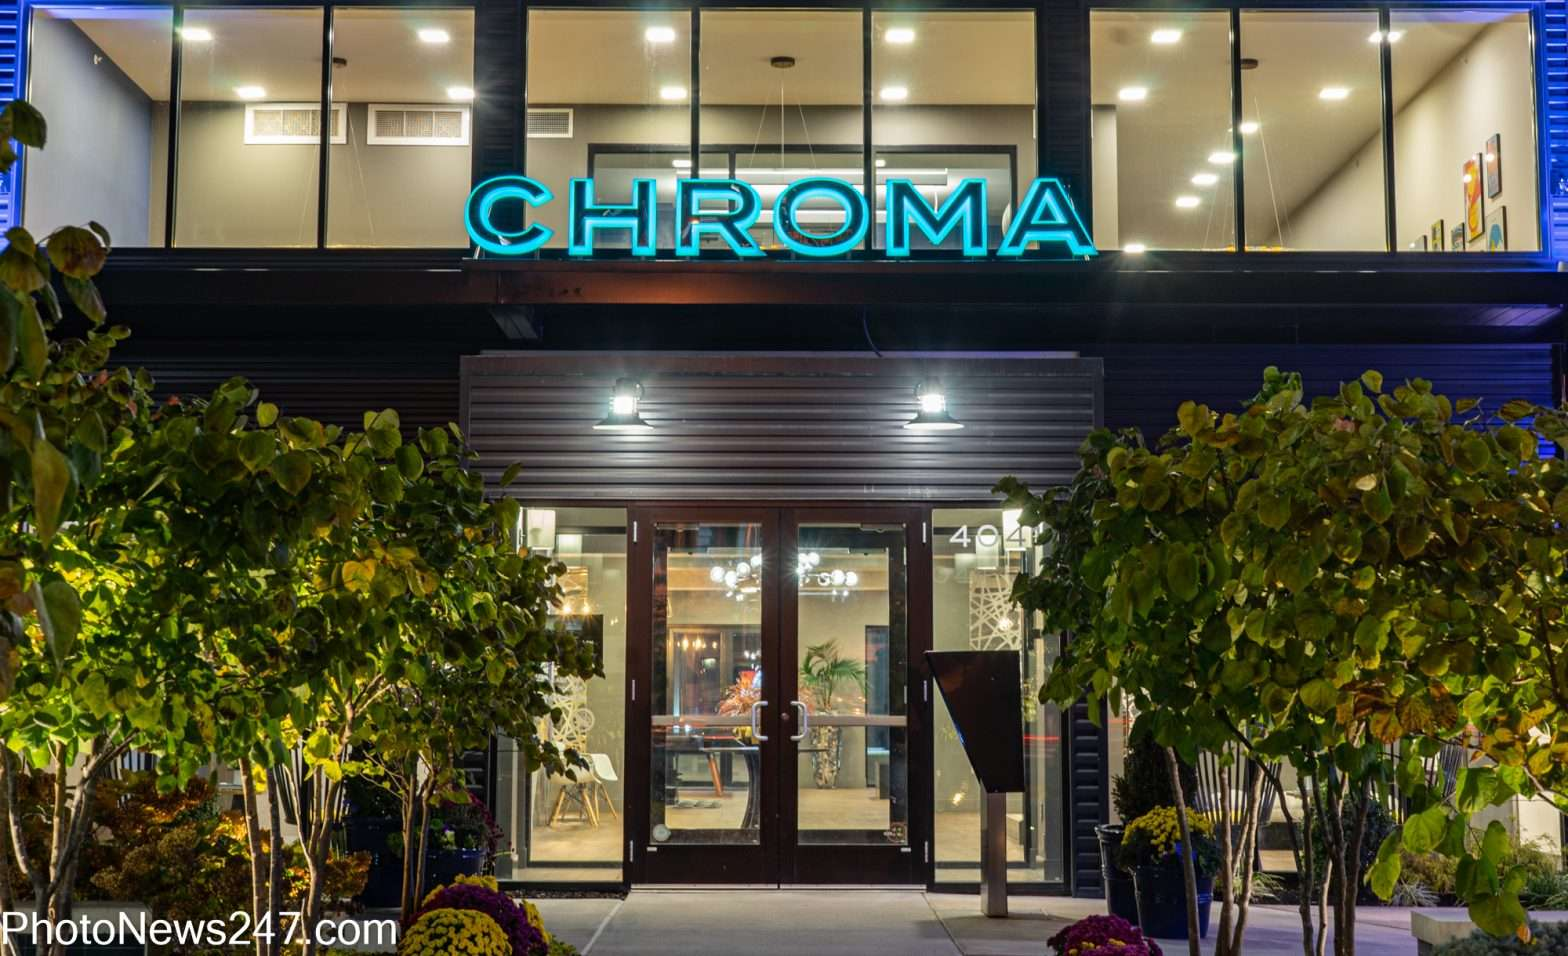 Chroma STL Apartments front entrance The Grove. credit photonews247.com